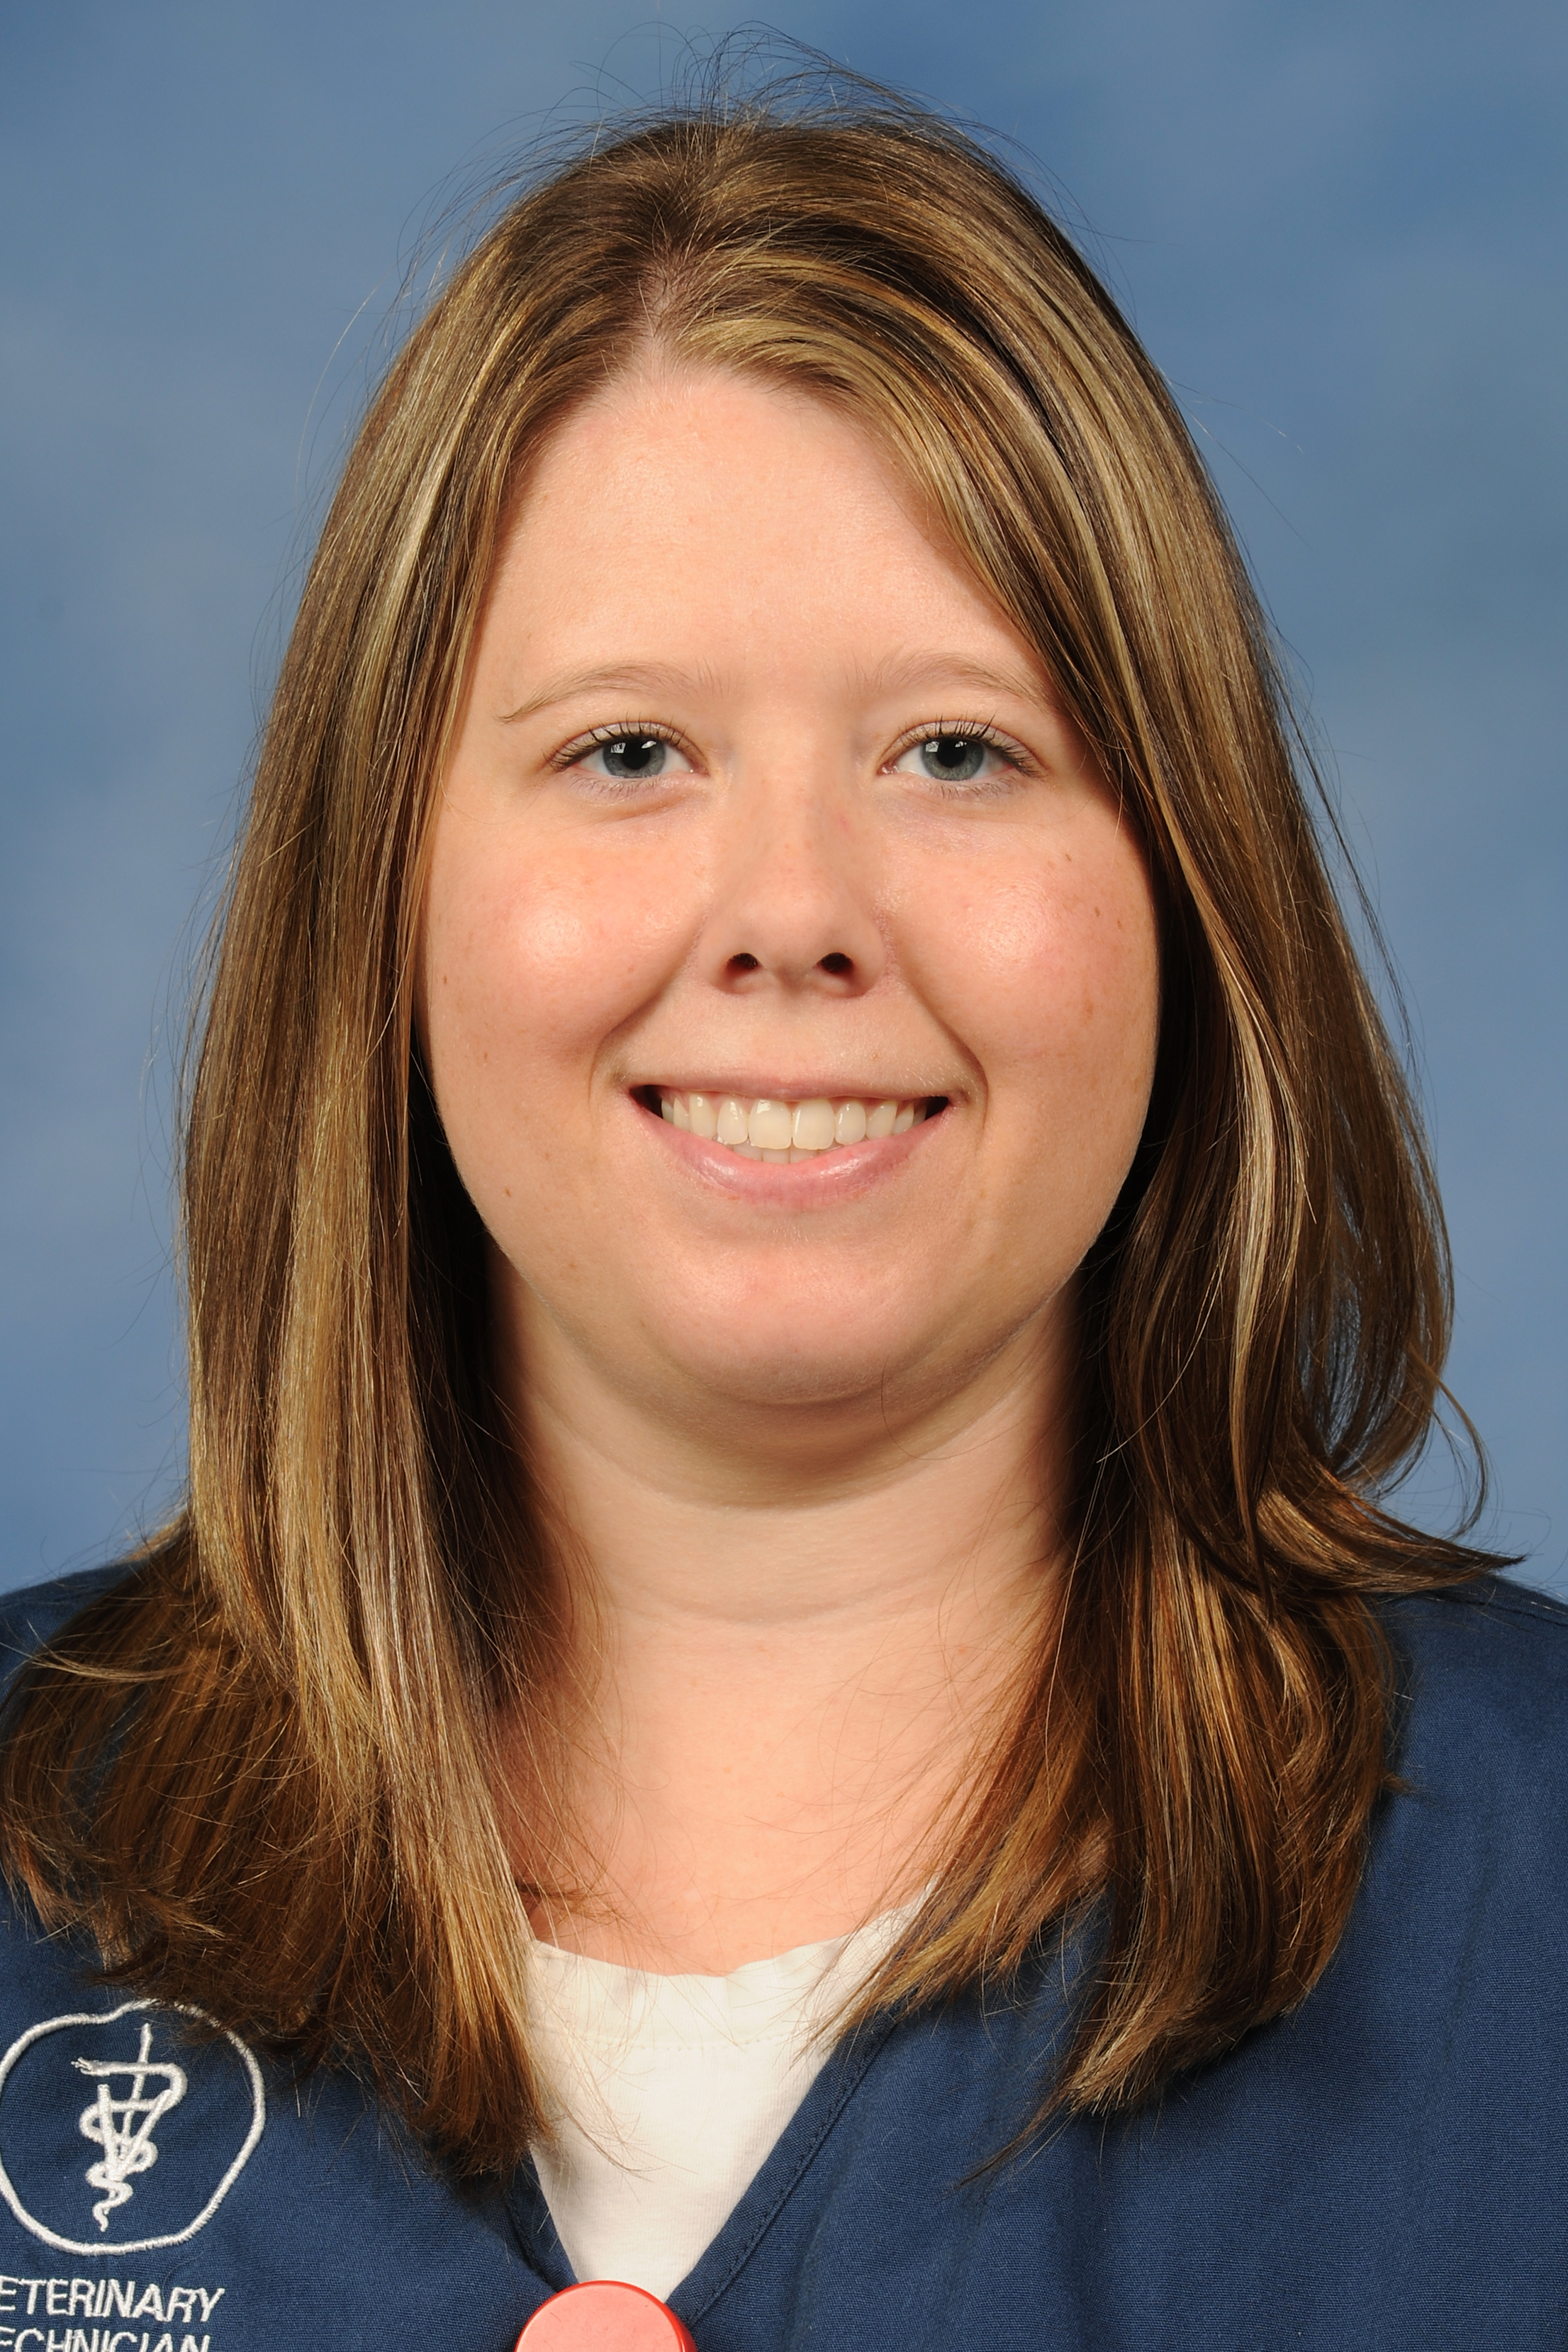 Pay State Farm Bill >> Heather Anderson | Veterinary Medical Center